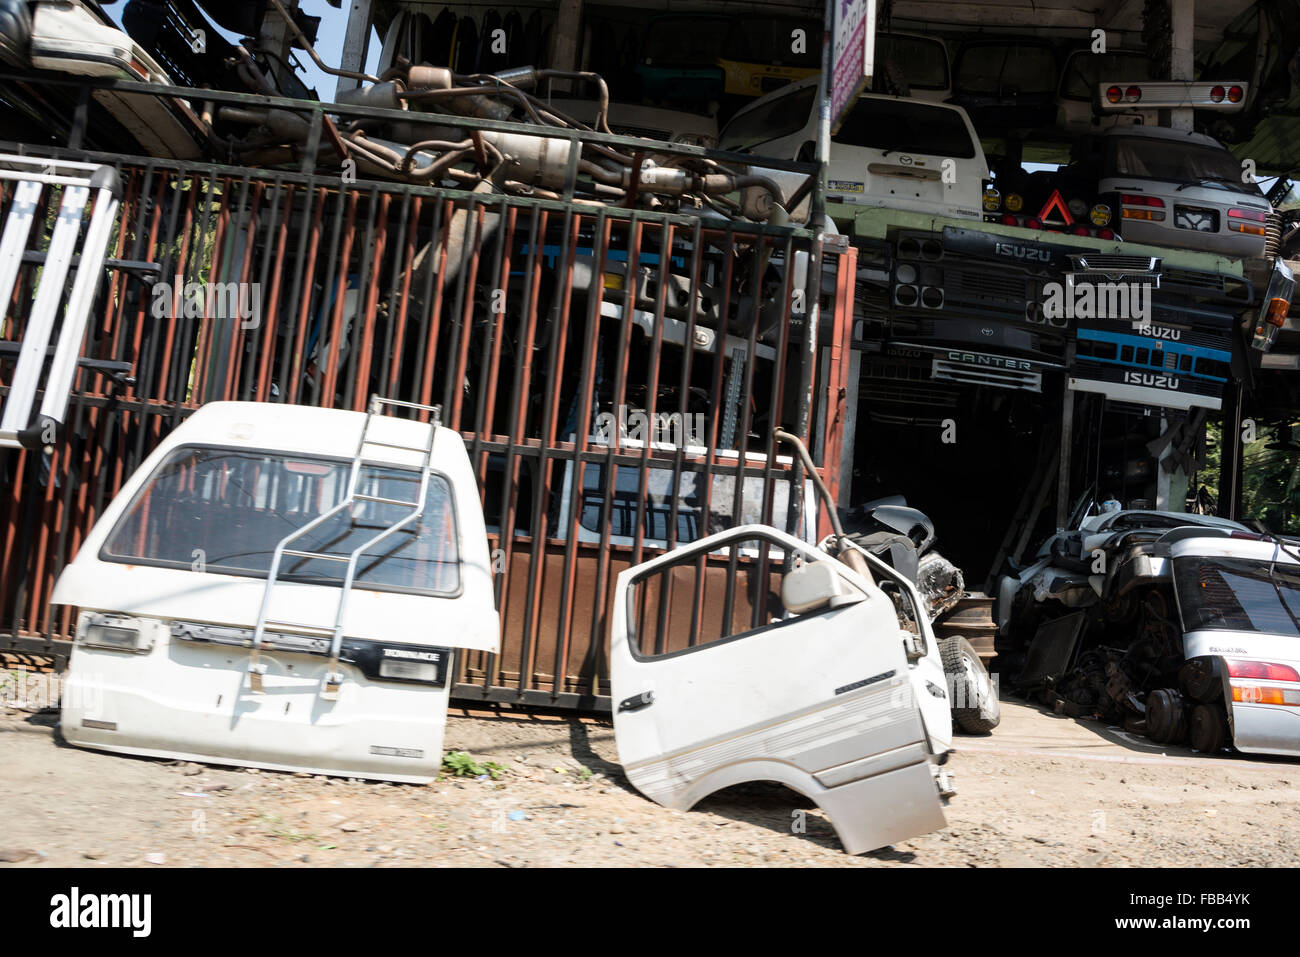 A number of small secondhand car parts shops on the A1 highway (Colombo-Kandy Highway in Sri Lanka. - Stock Image